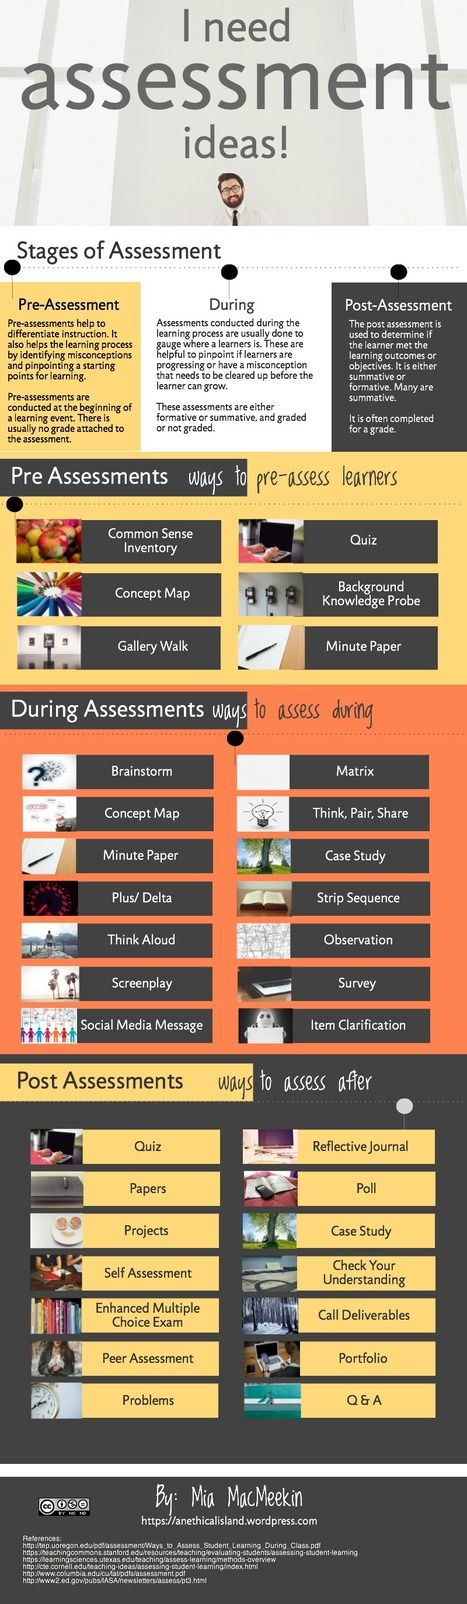 Assessment Ideas Infographic  Digital Delights  Digital Tribes